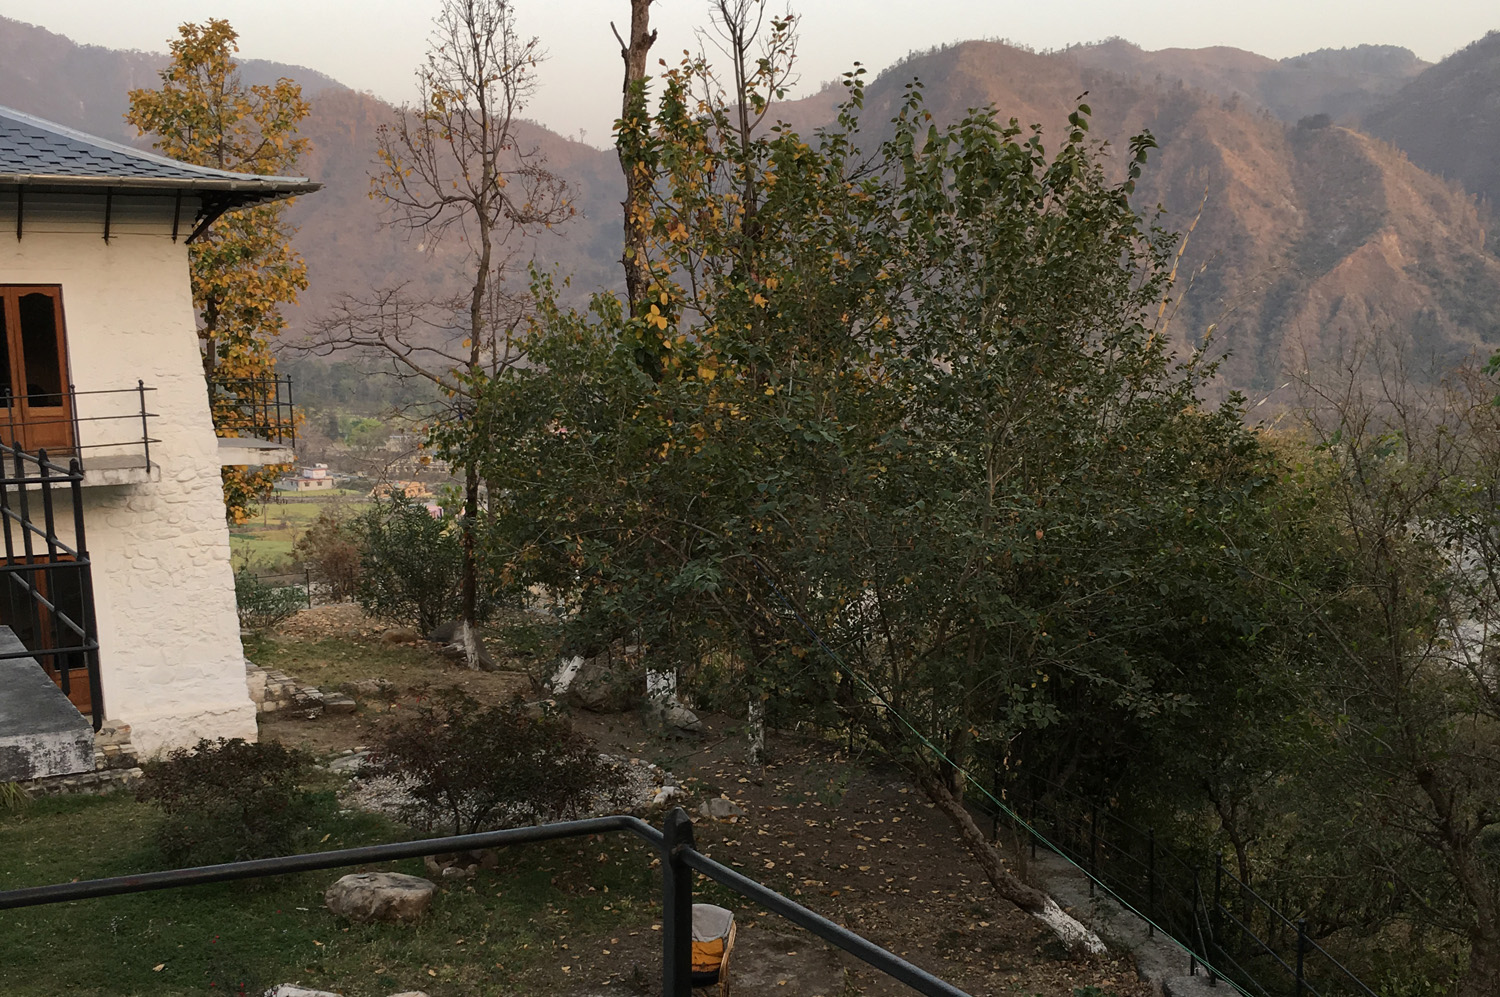 Stay At The Tarab Ling Retreat Centre